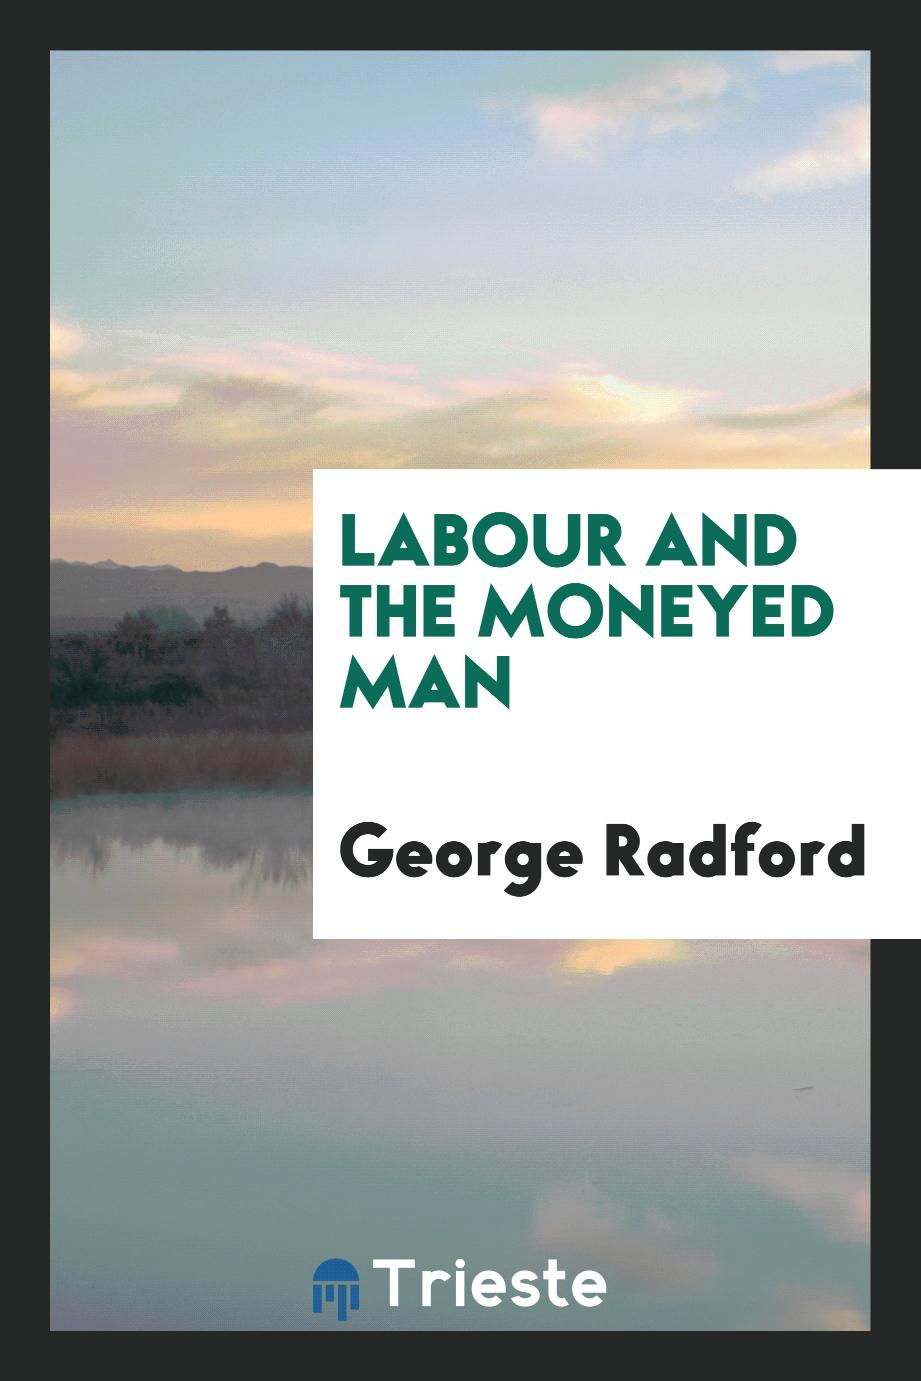 Labour and the moneyed man